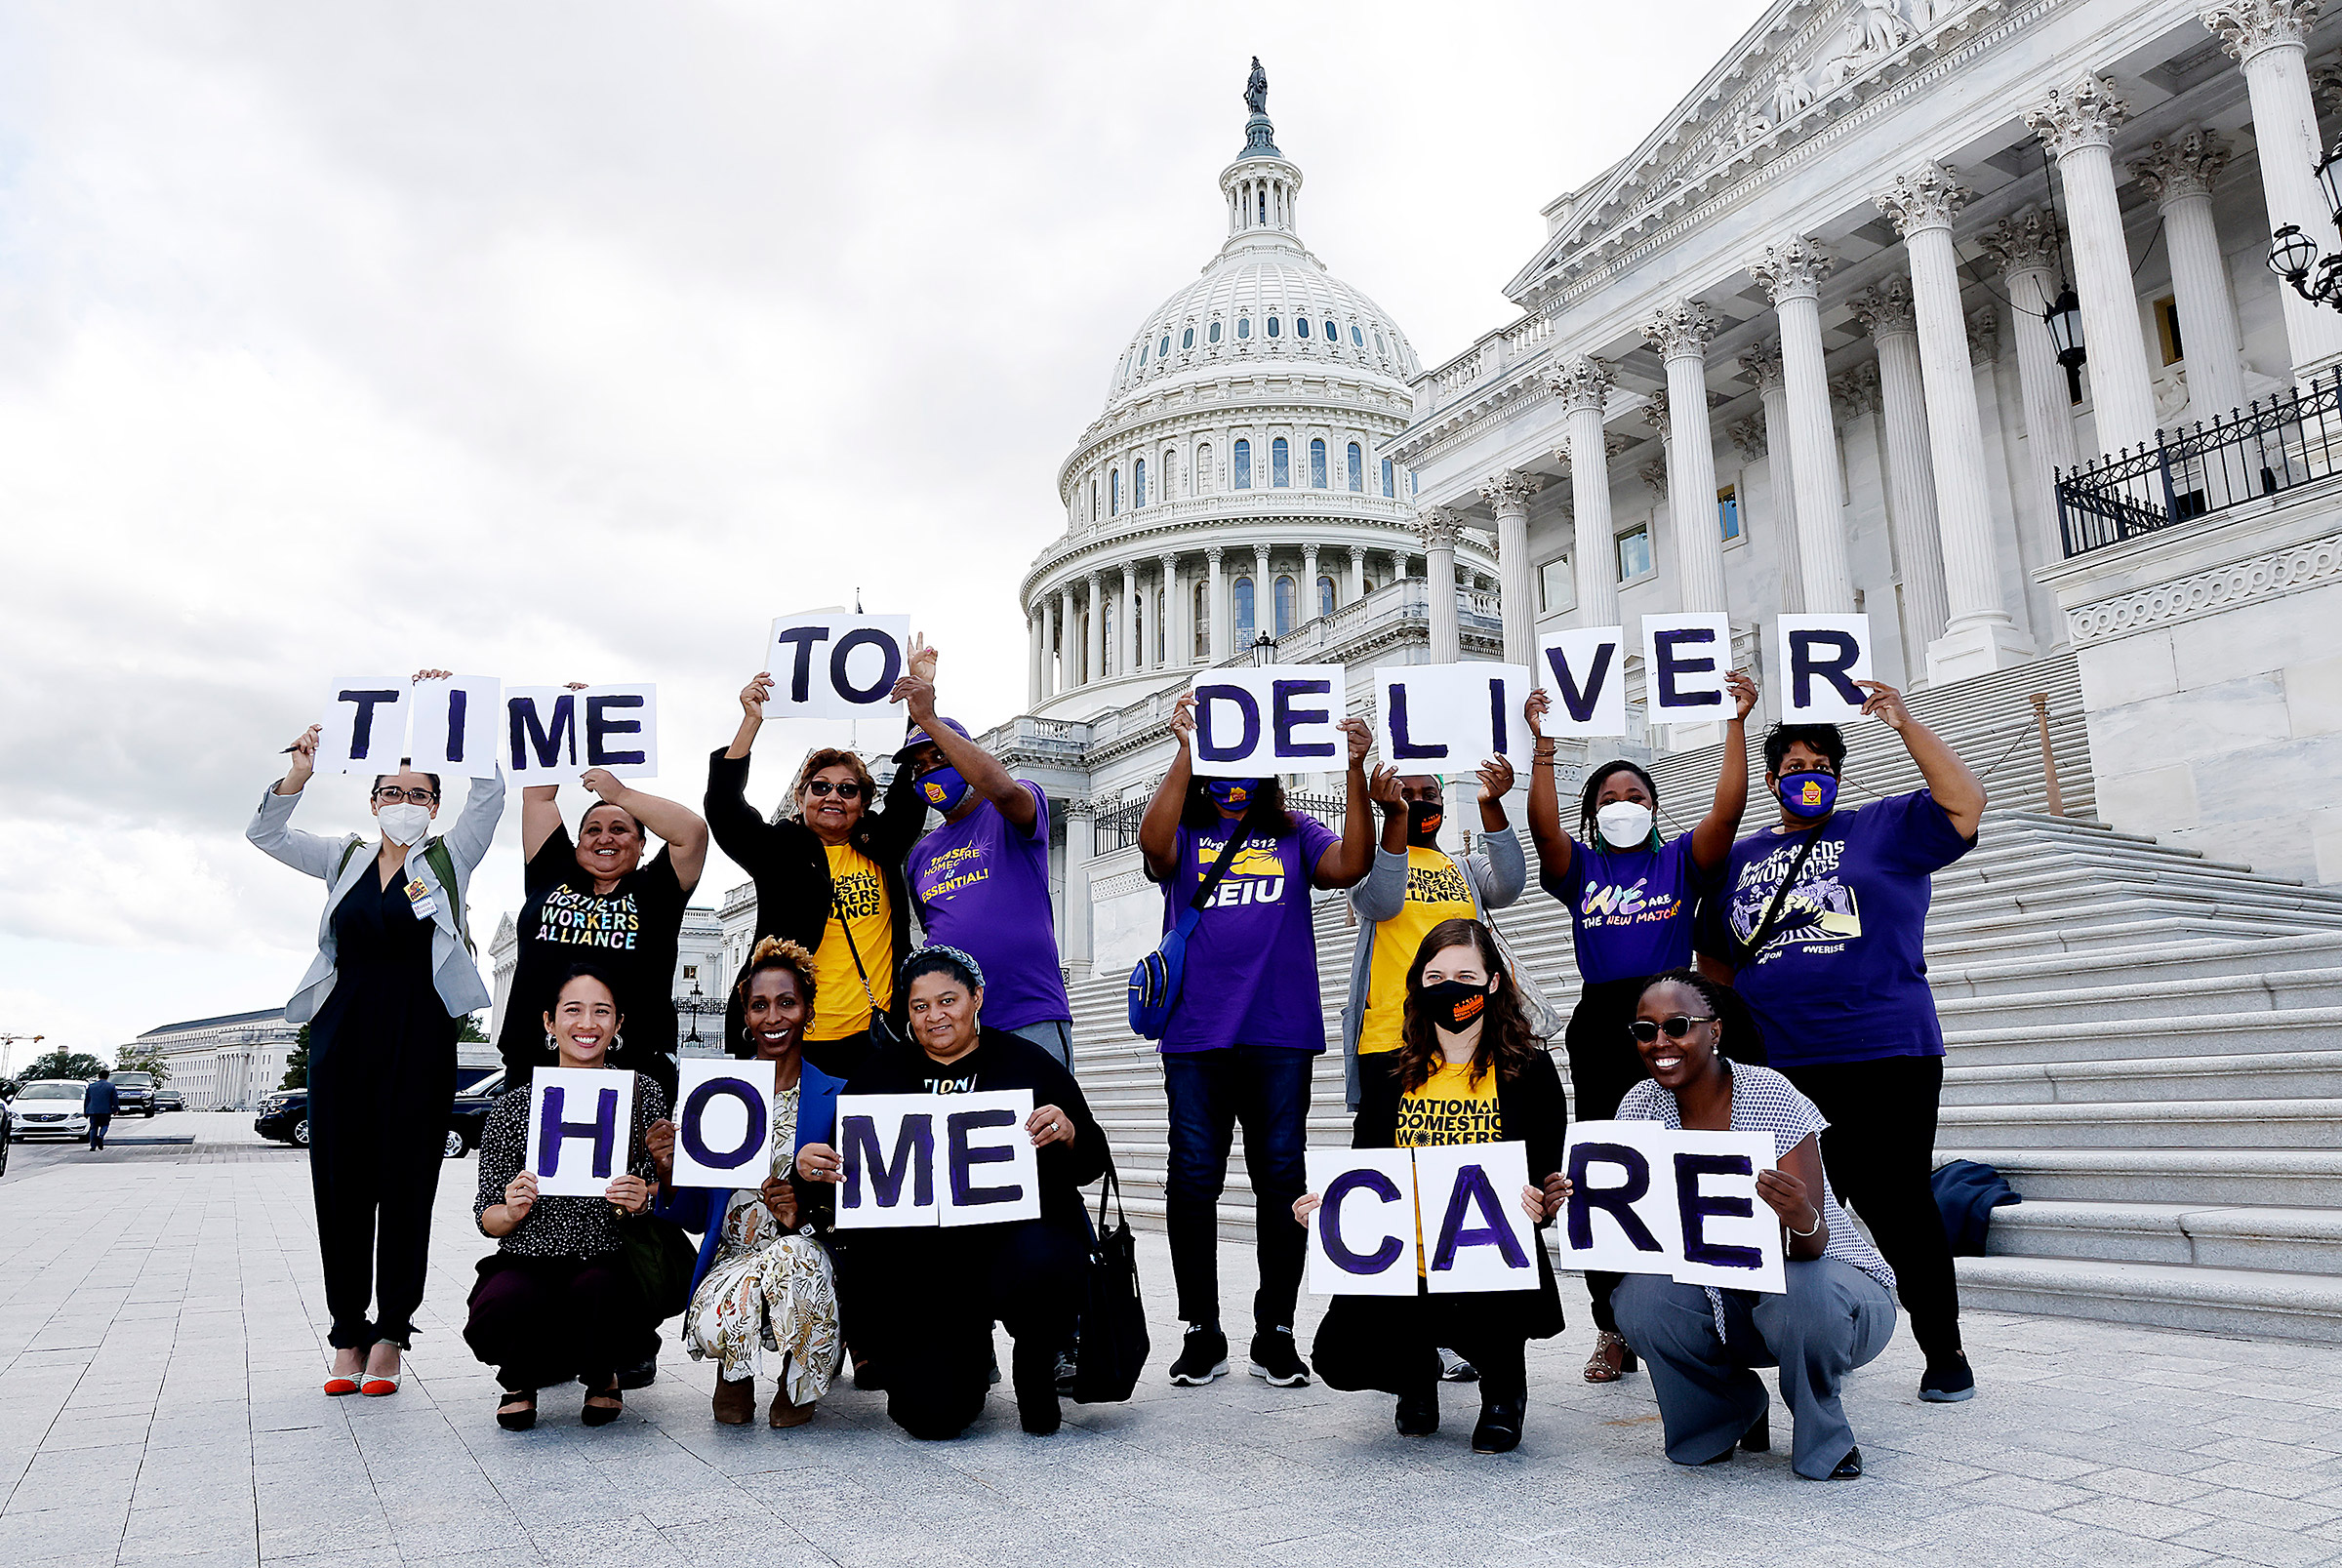 Advocates rally for the Time To Deliver Home Care as part of Build Back Better Act at the Capitol Building in Washington, D.C., on Sept. 23, 2021.